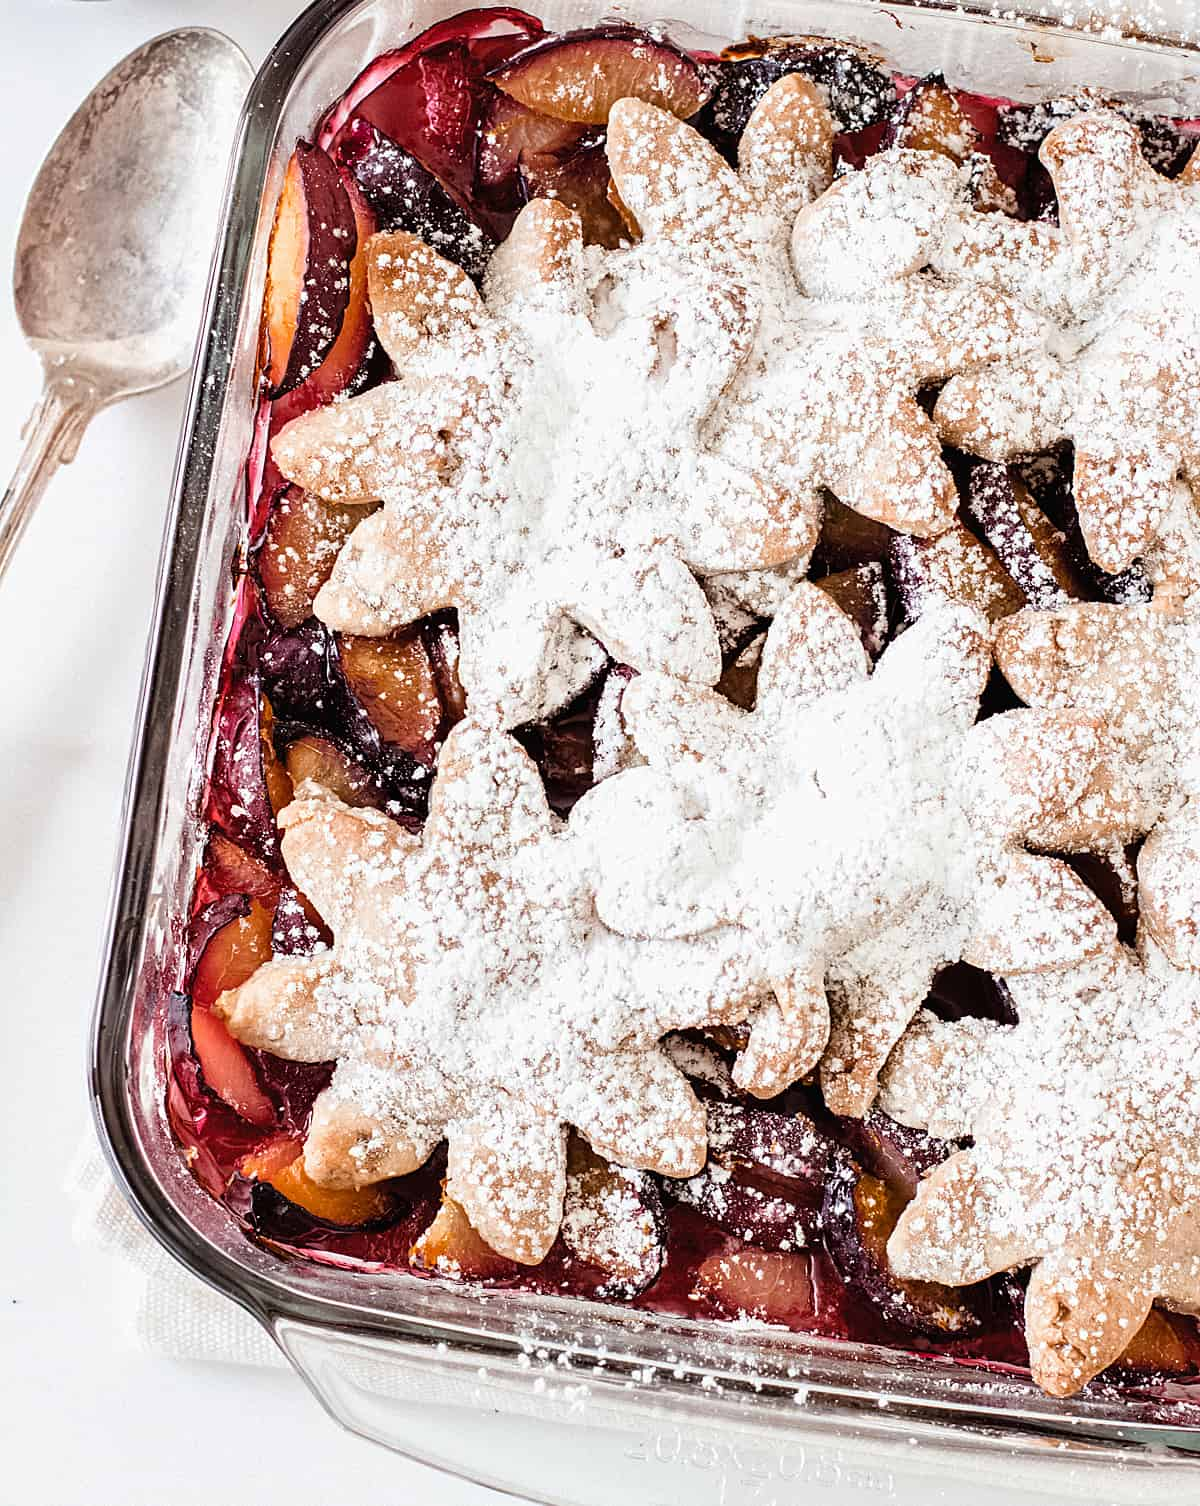 Partial photo of plum cobbler dusted with powdered sugar on a white surface, a silver spoon on the side